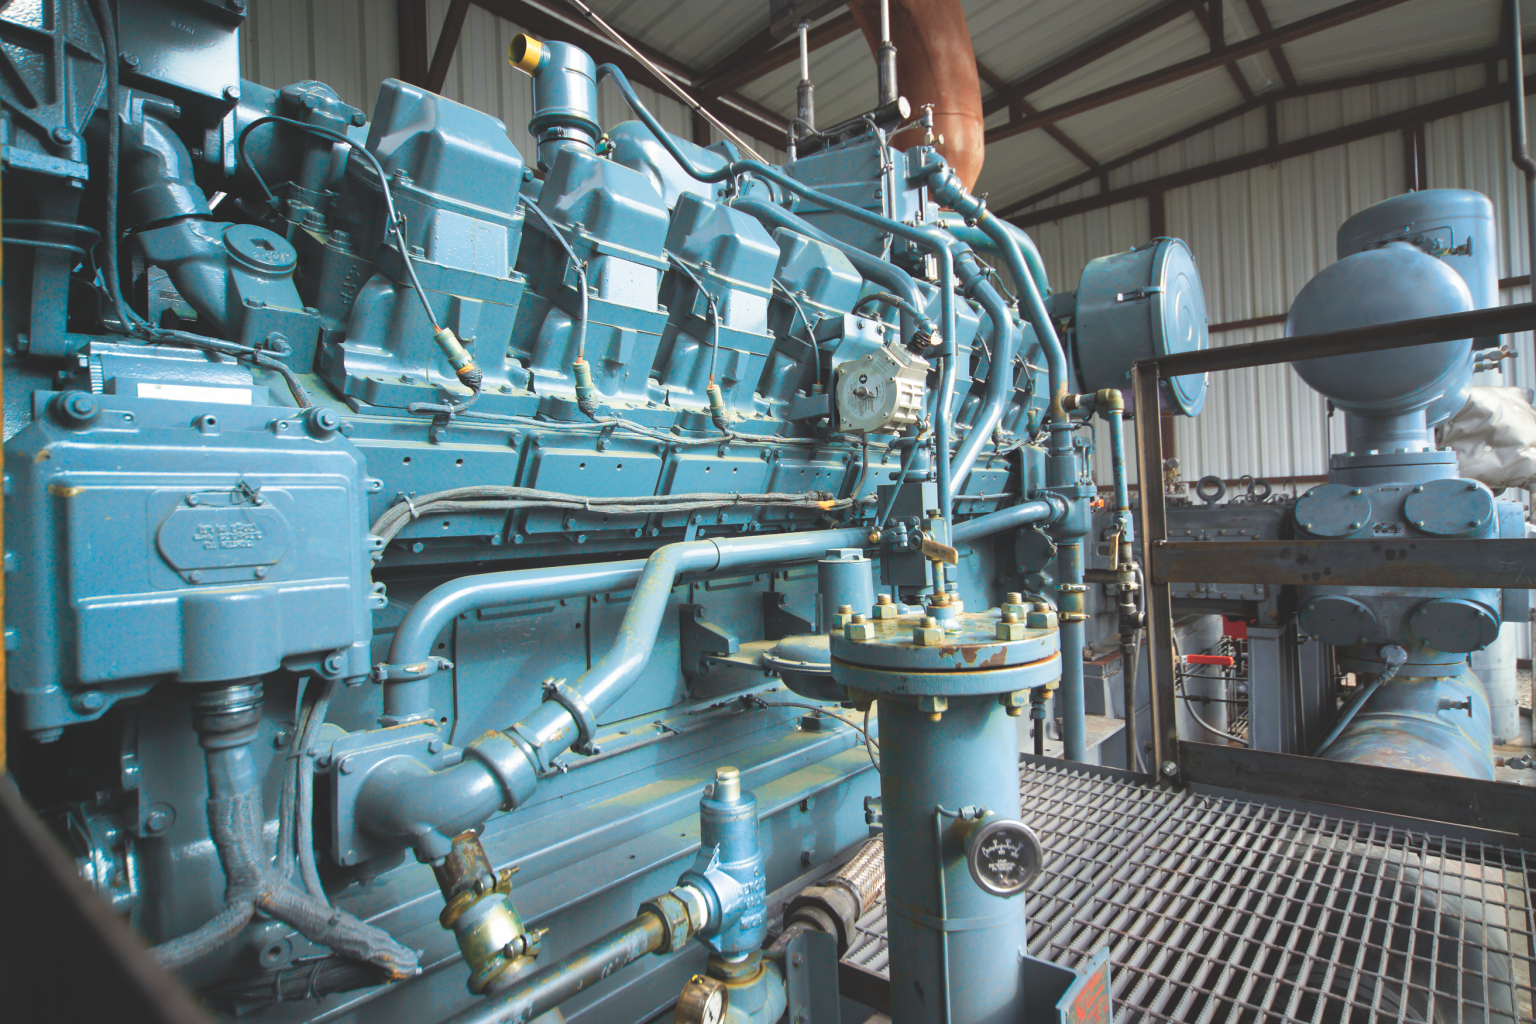 Engines used in waste to energy applications must be protected with lubricants